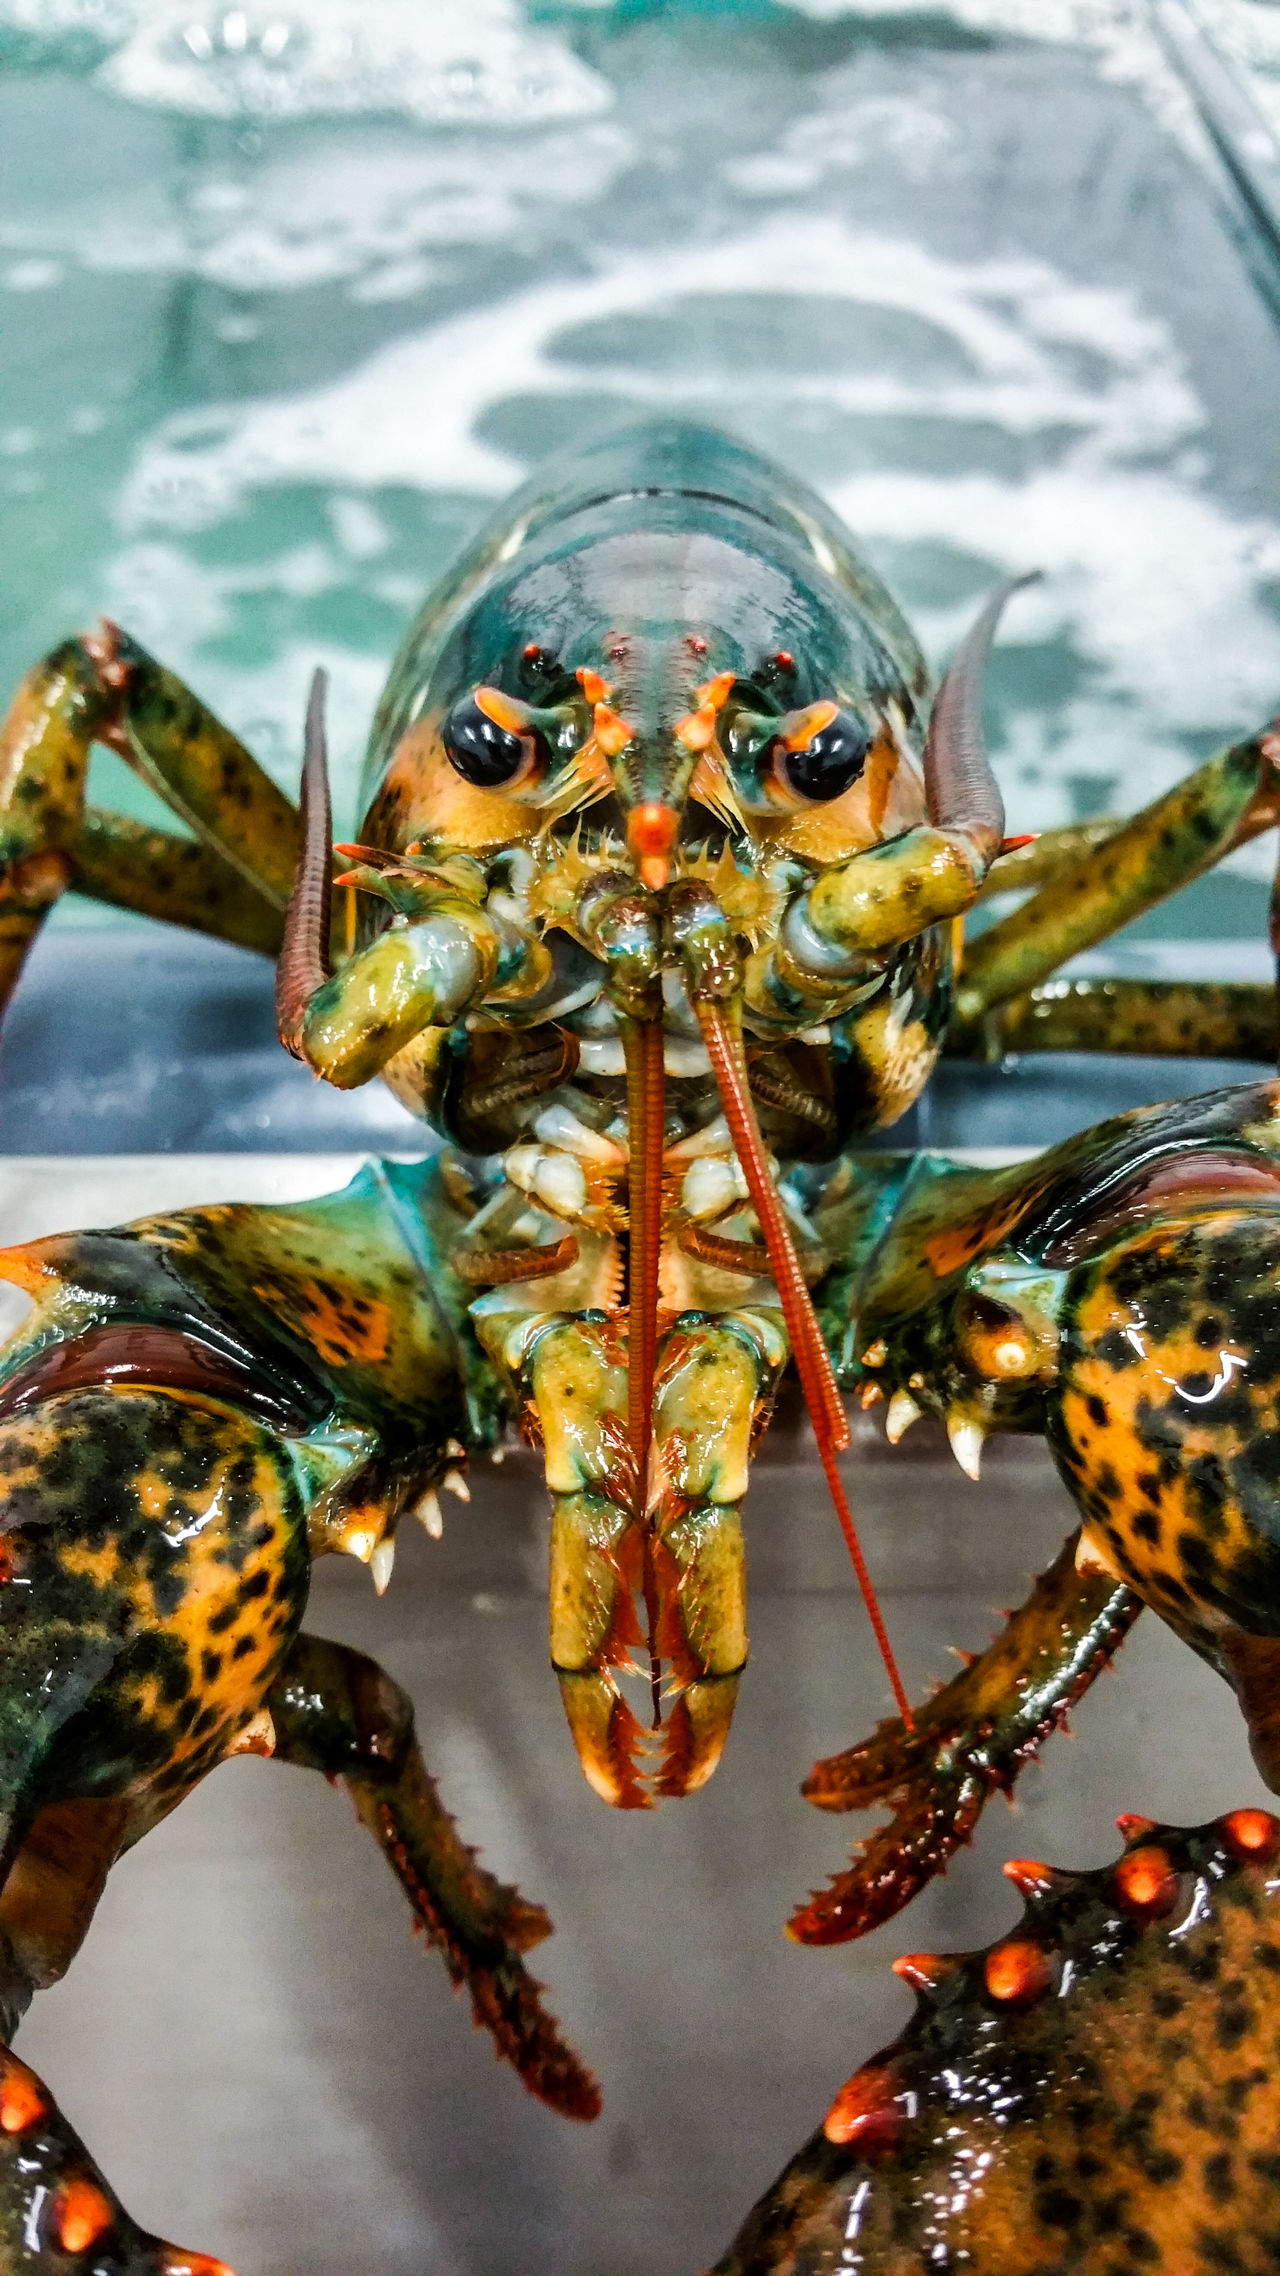 One Animal Animal Themes Reflection Water Animals In The Wild Close-up Nature No People Animal Wildlife Sea Life Beauty In Nature Aquarium Lobsters Sea Life. Sea Portrait Wild Sea monster Monster The Week On EyeEem Animals